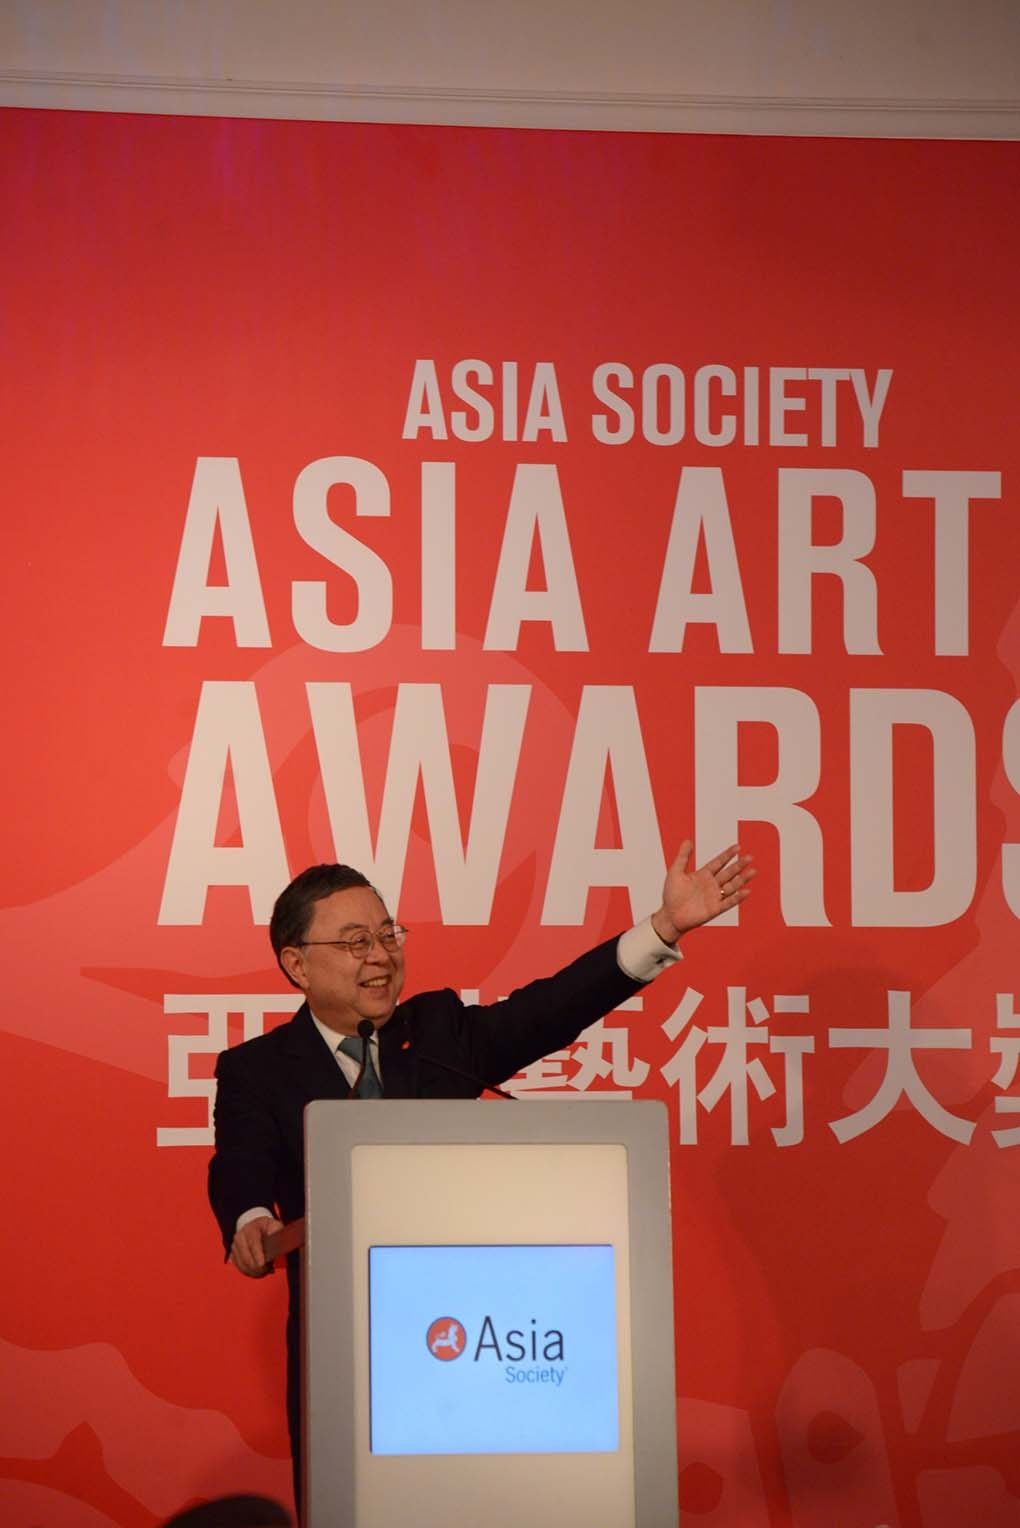 Ronnie C. Chan, Asia Society Global Co Chair, welcoming Asia Society Global Trustees to Hong Kong at the 2017 Asia Arts Awards Hong Kong.